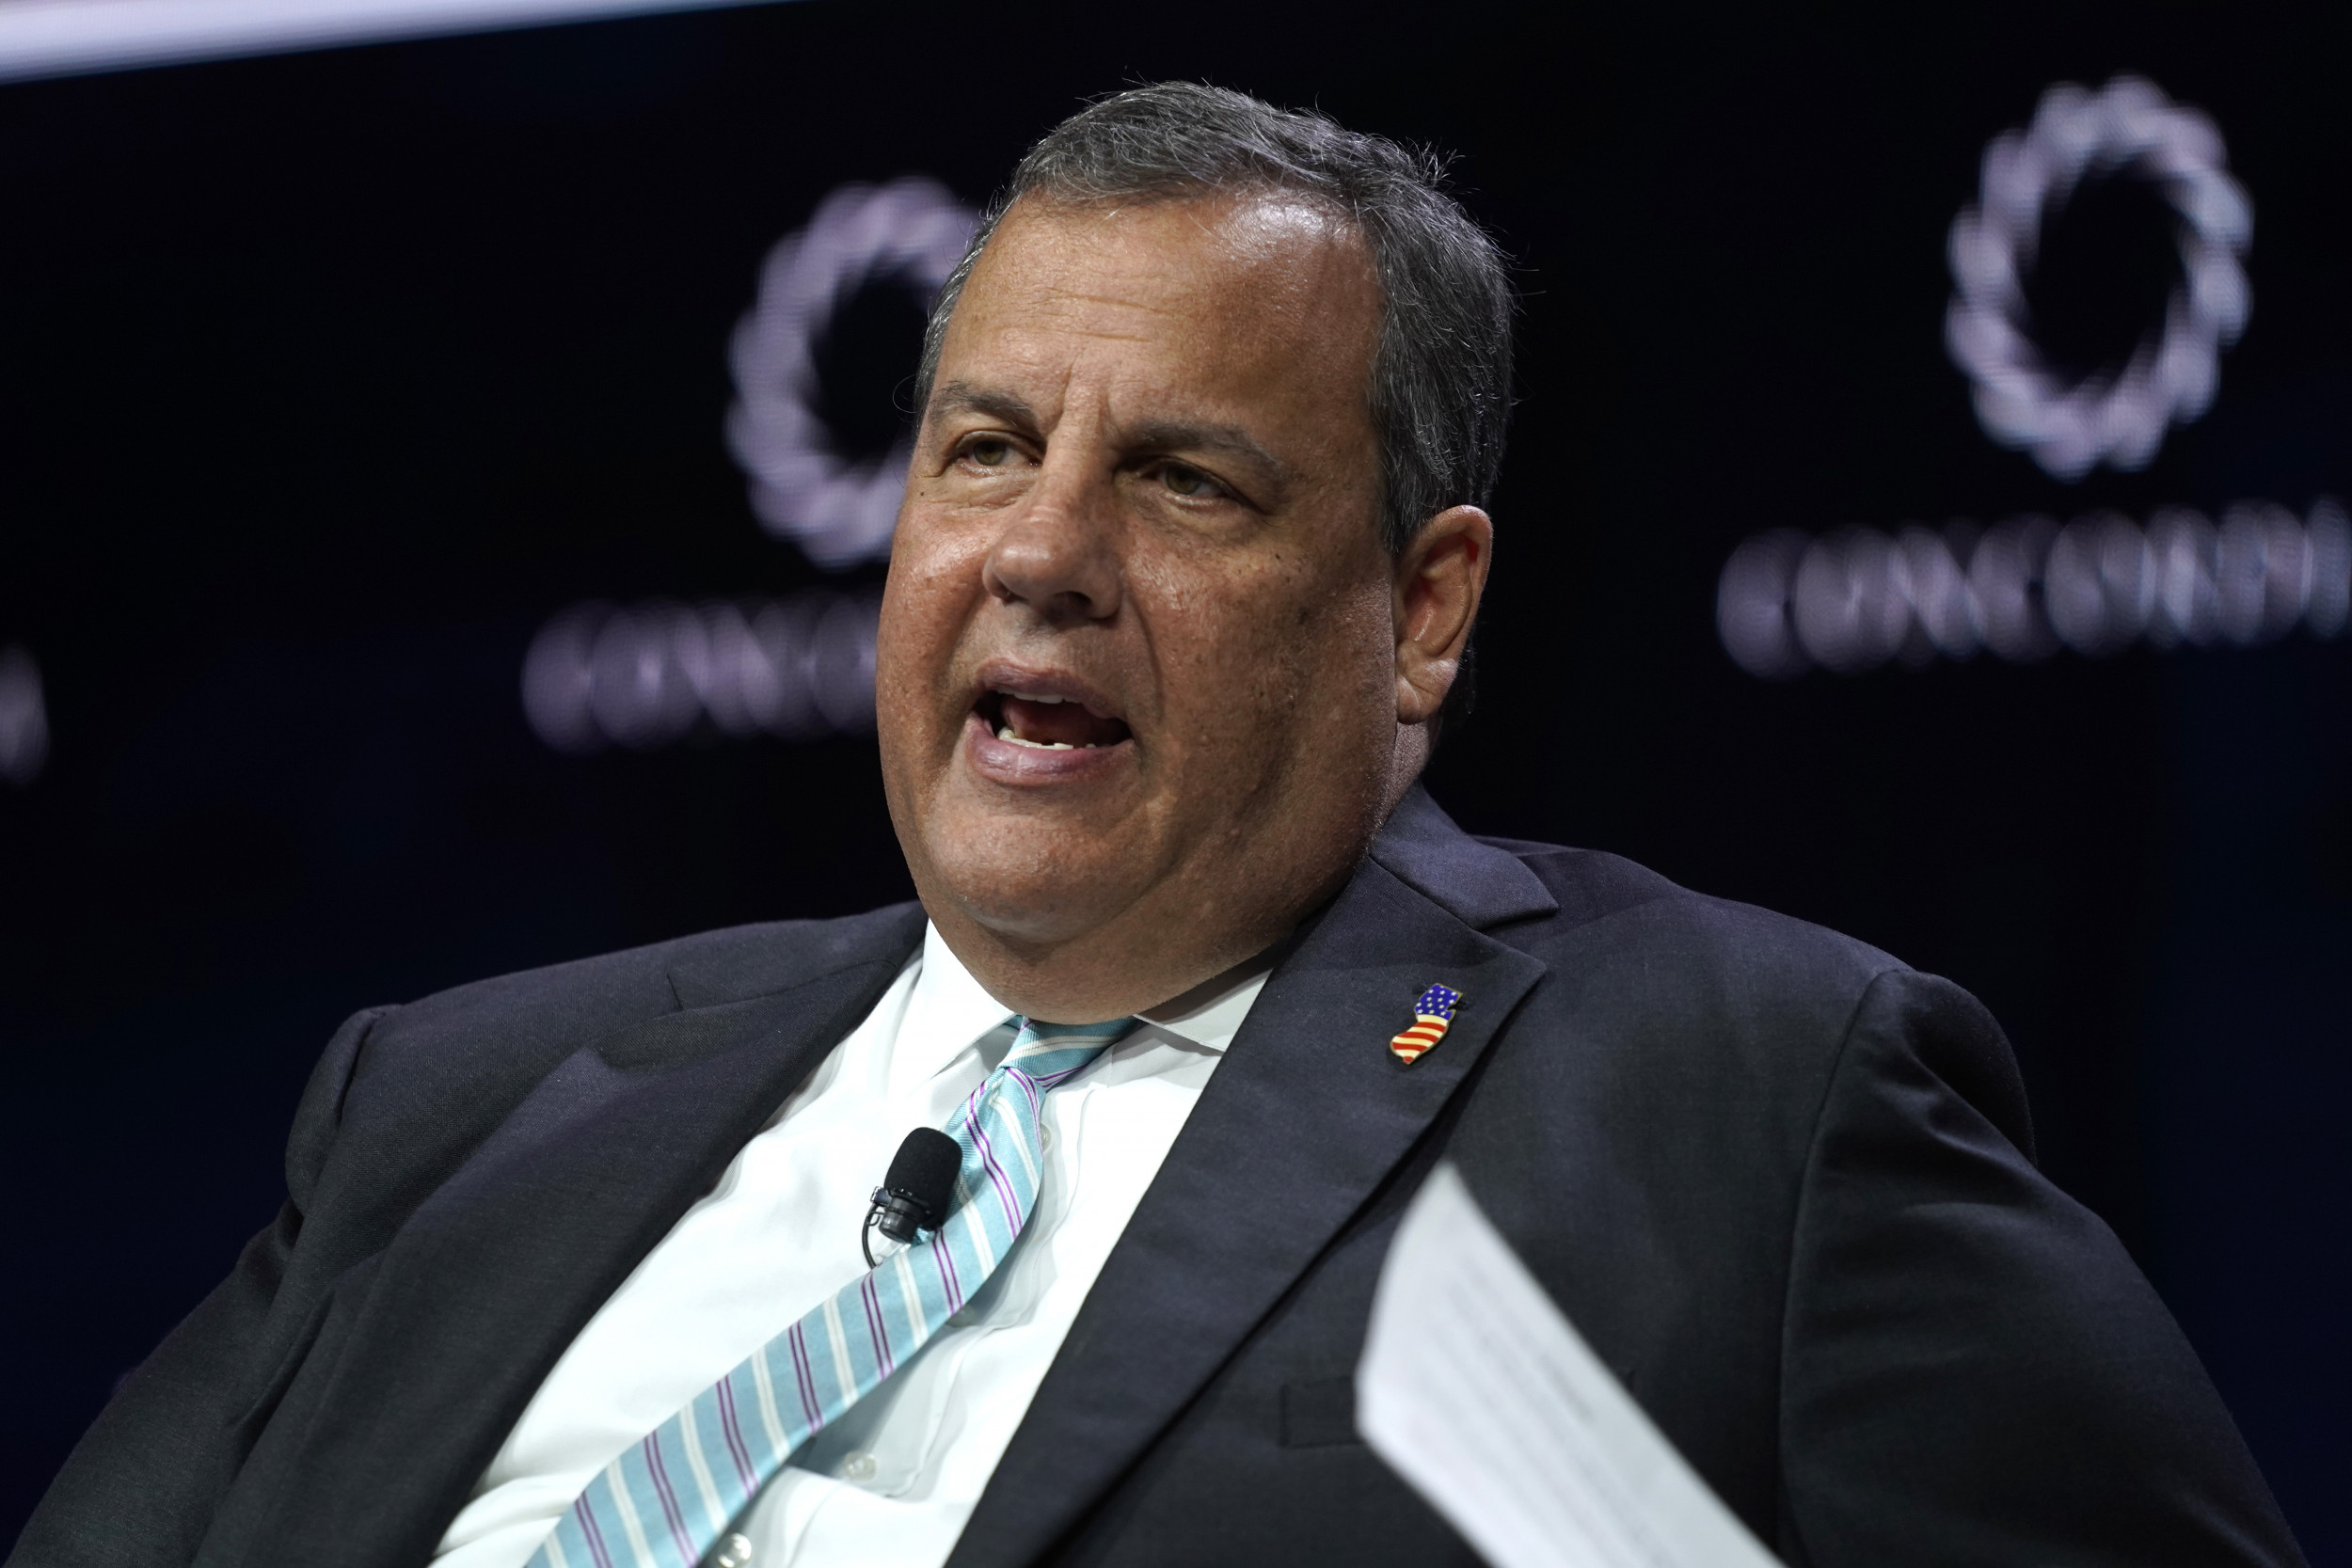 Chris Christie says Donald Trump loves showing off his properties but G7 Doral plan was 'unforced error'